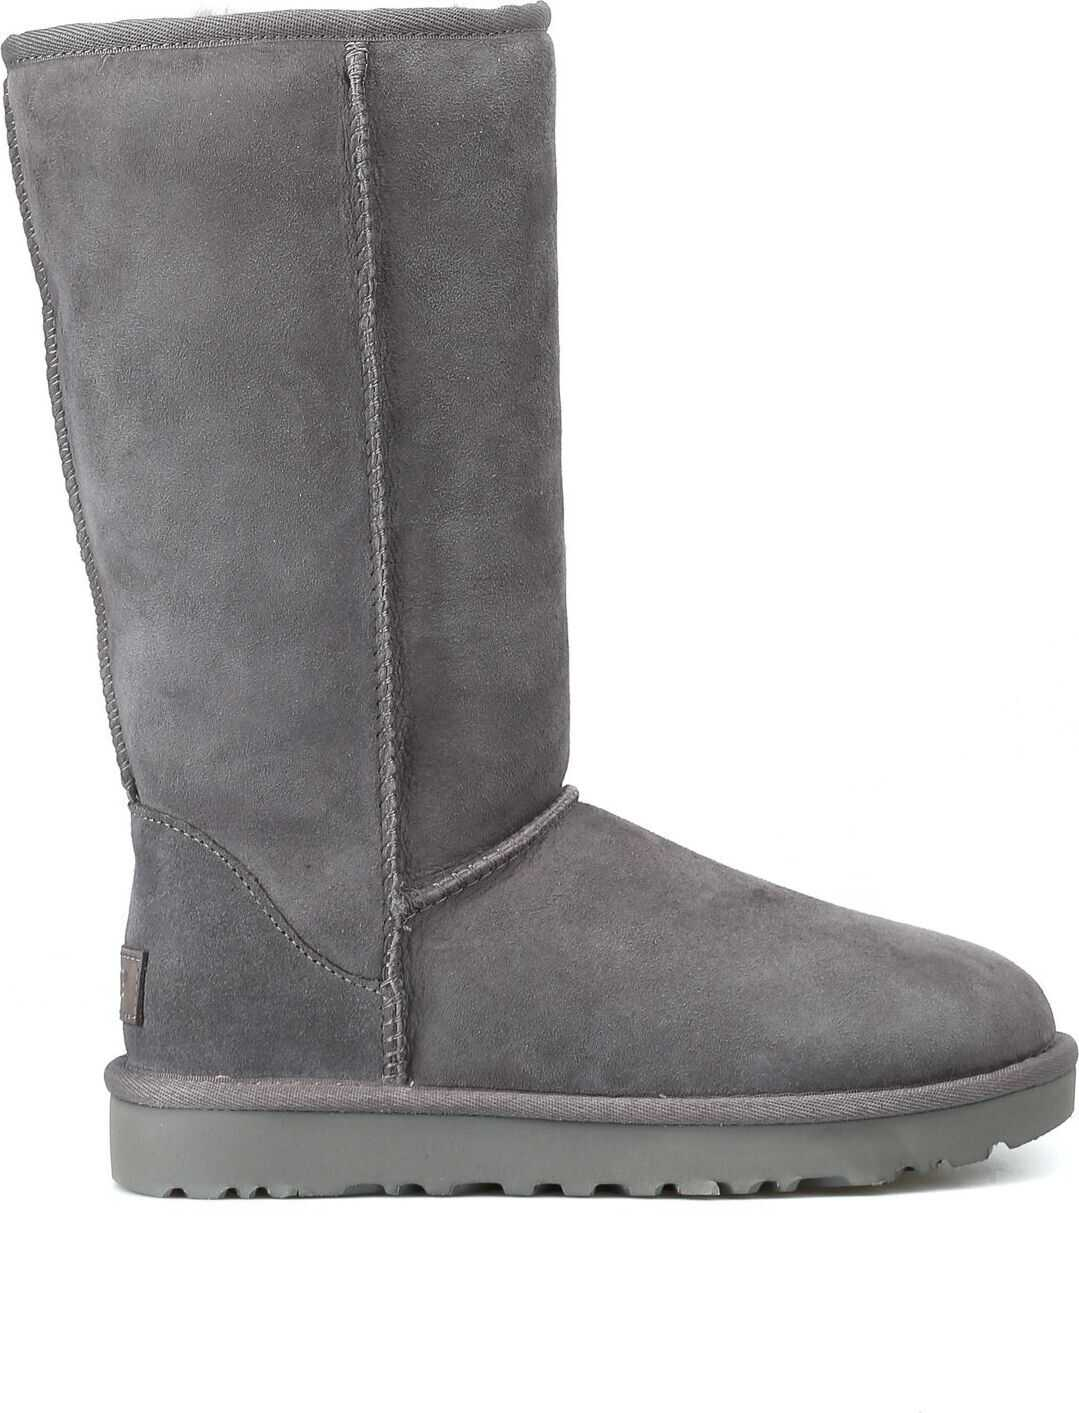 Leather Boots thumbnail